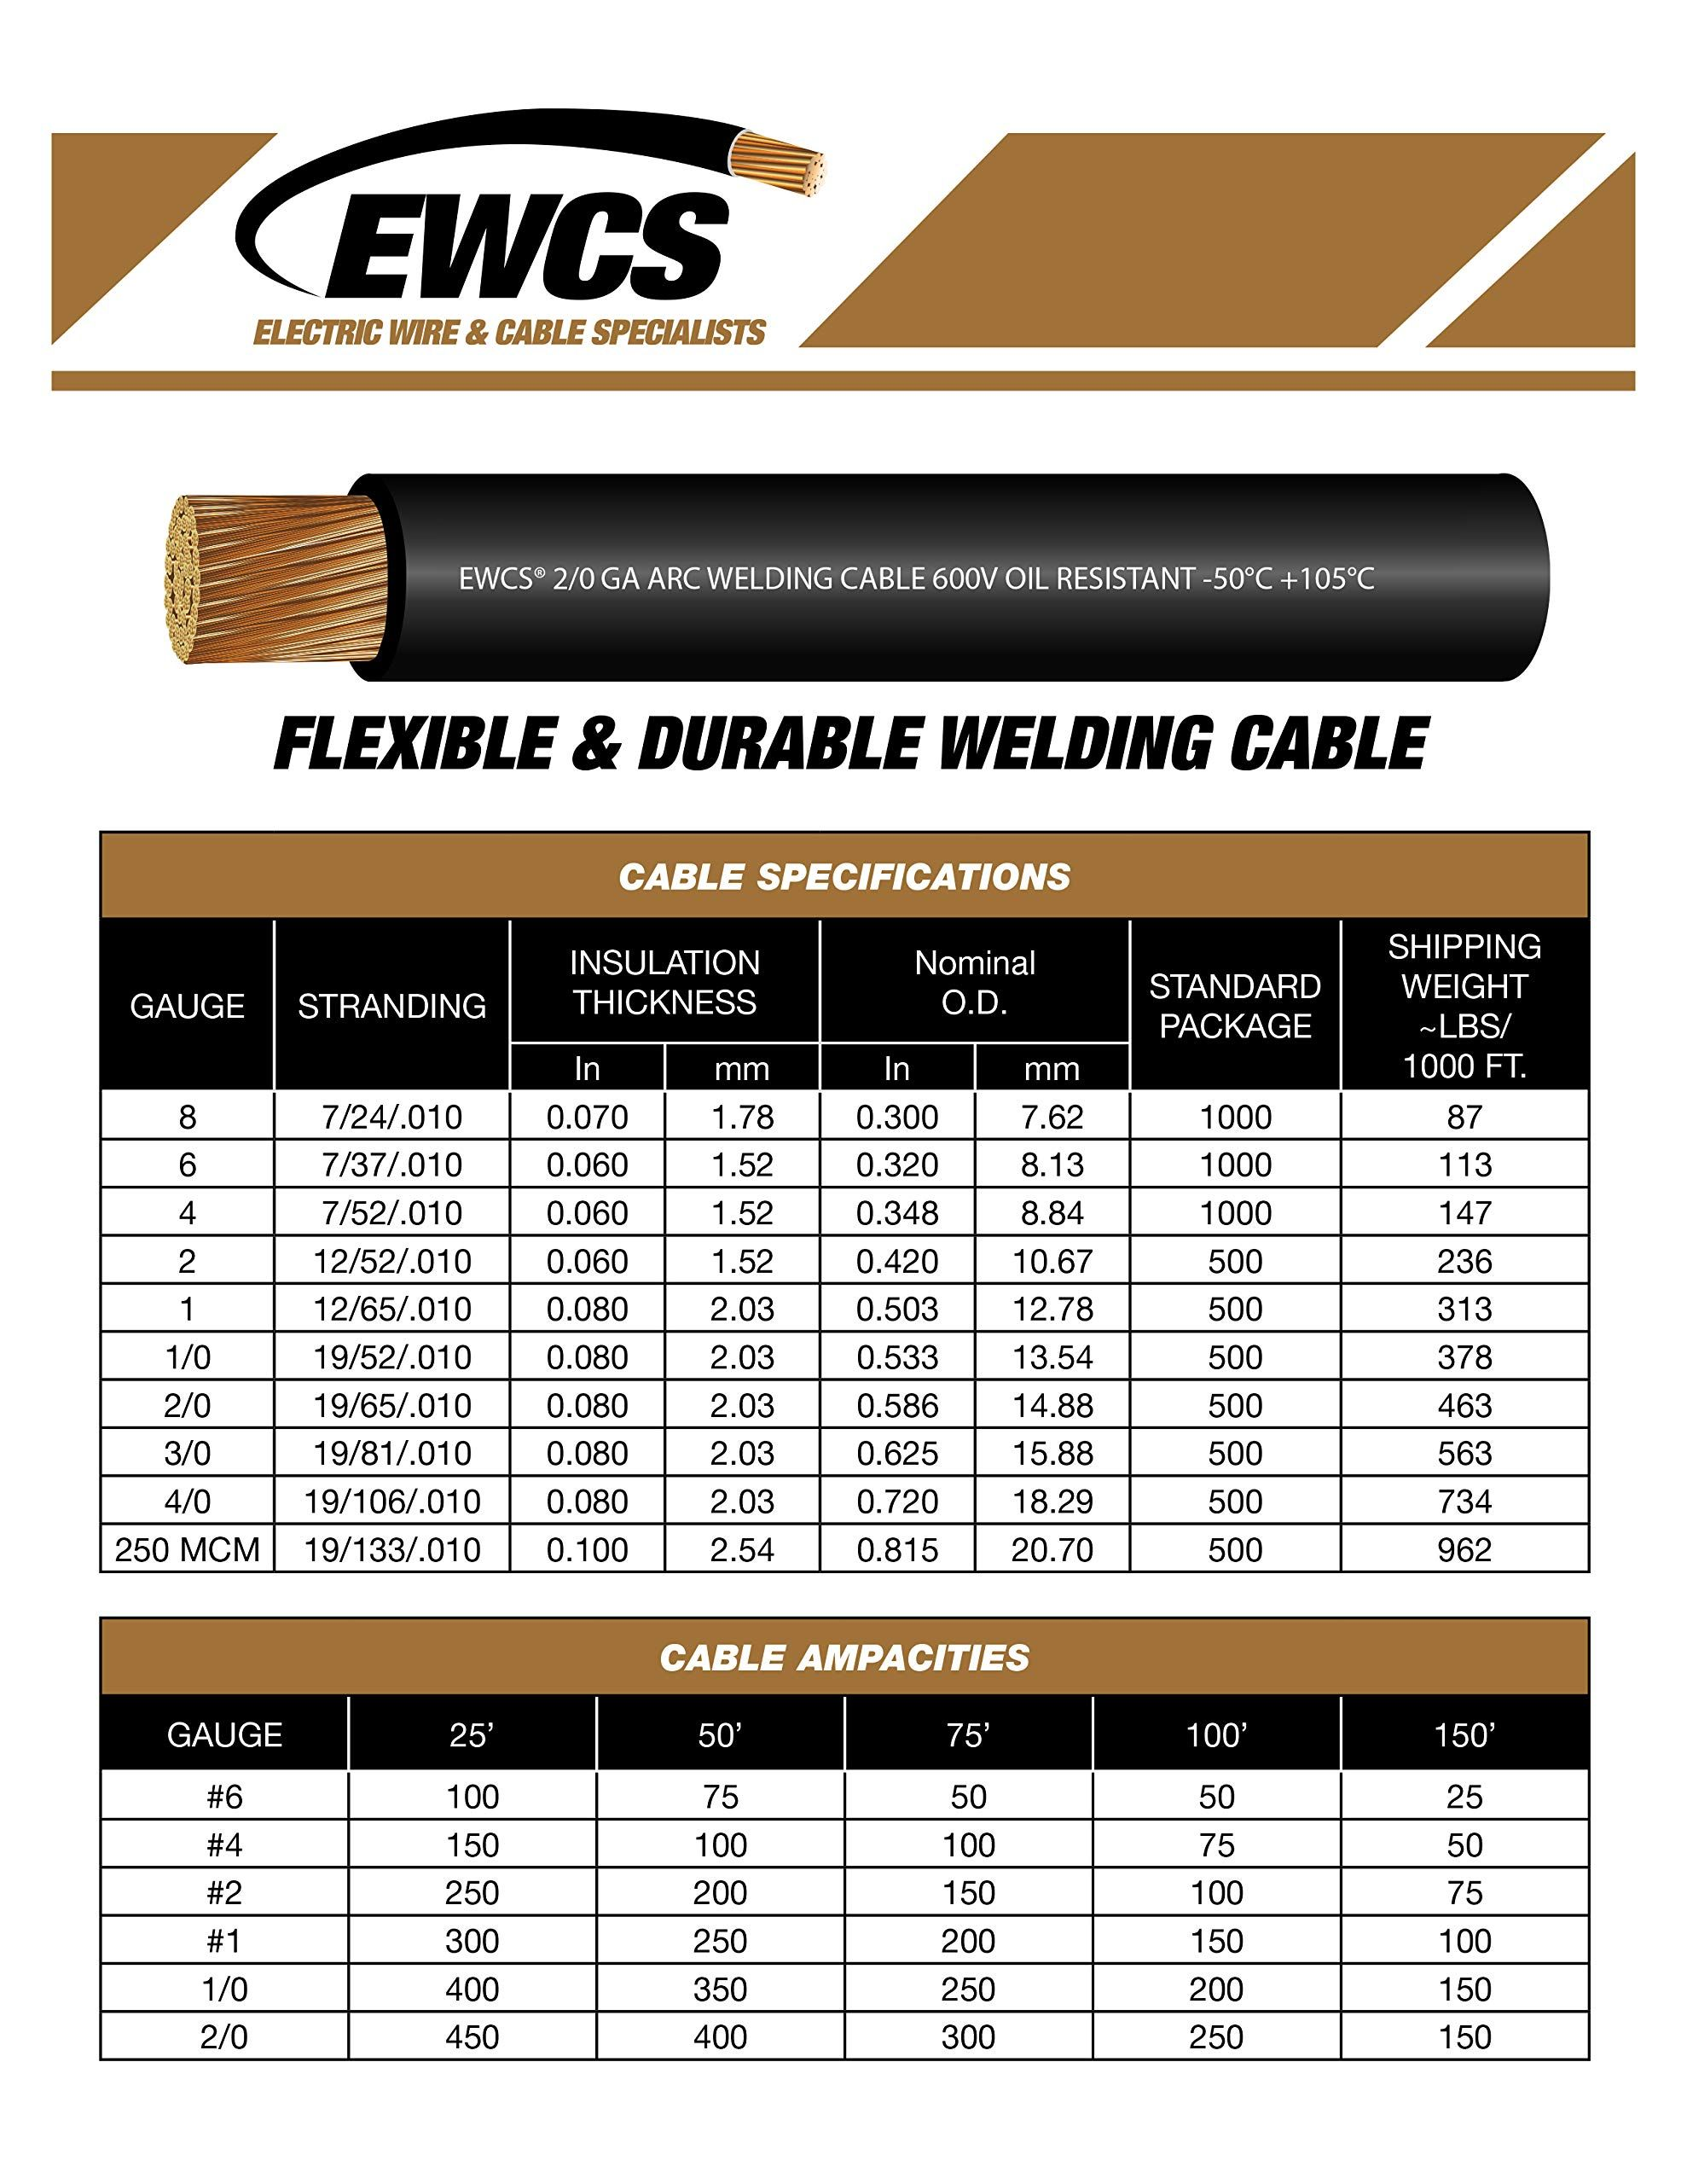 2 Gauge Premium Extra Flexible Welding Cable 600 Volt Red 25 Feet Ewcs Spec Made In The Usa Ad Welding Sponsore Welding Cable Welding Flexibility